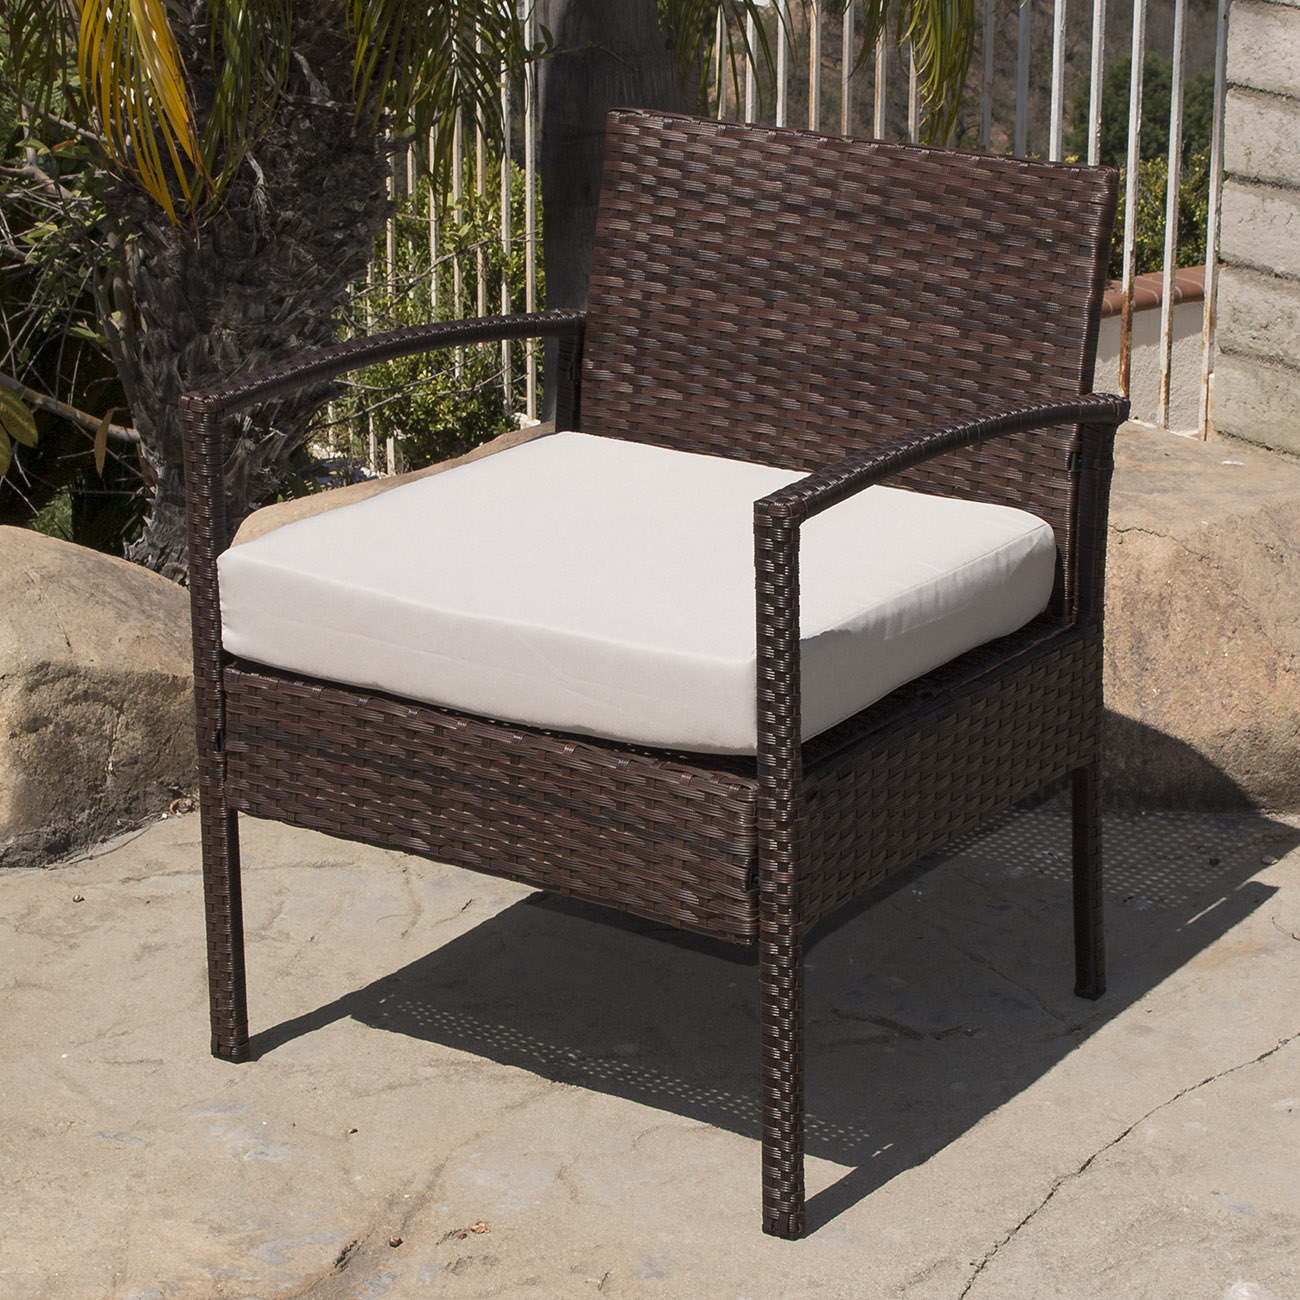 Outdoor Chair Set 4pc Rattan Wicker Patio Furniture Set Sofa Chair 43table